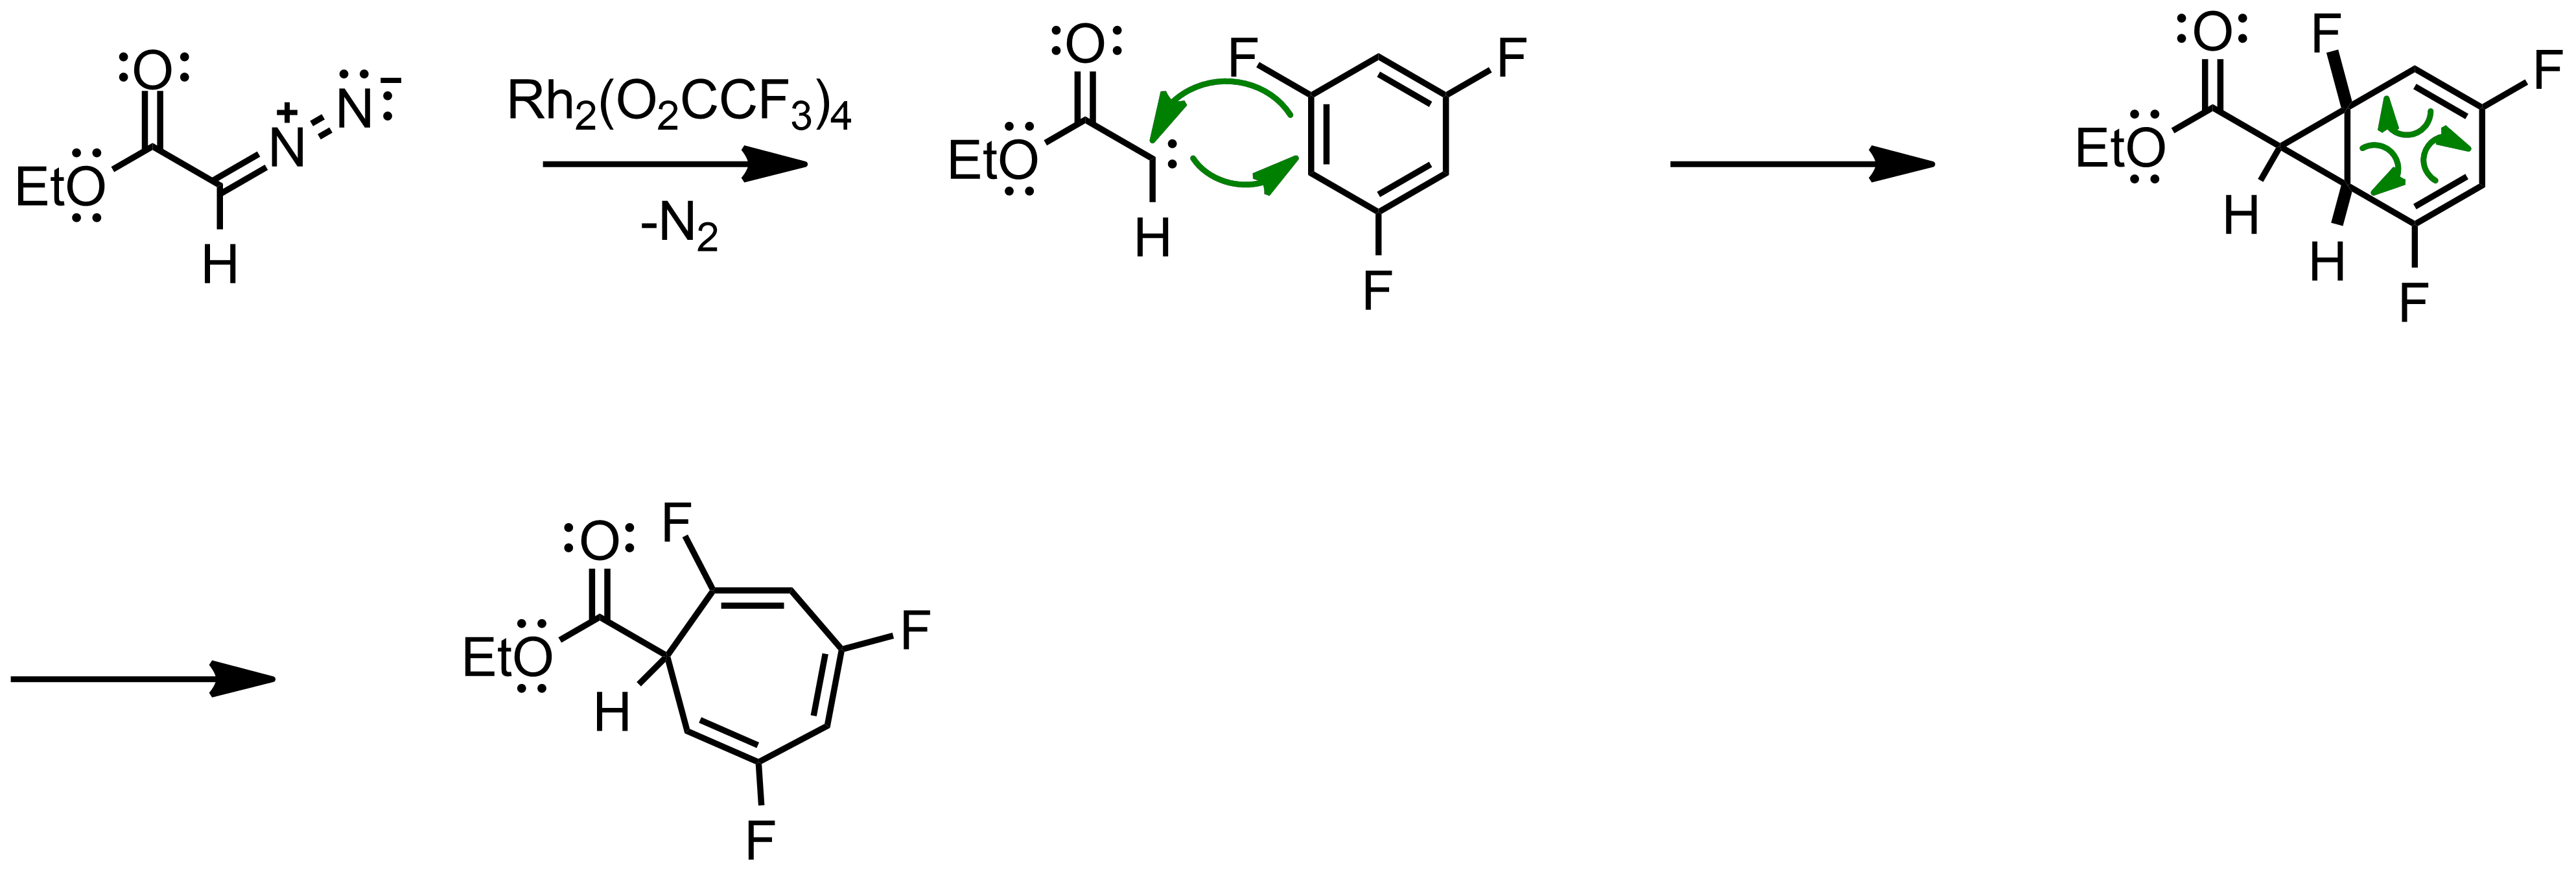 Mechanism of the Buchner Ring Expansion